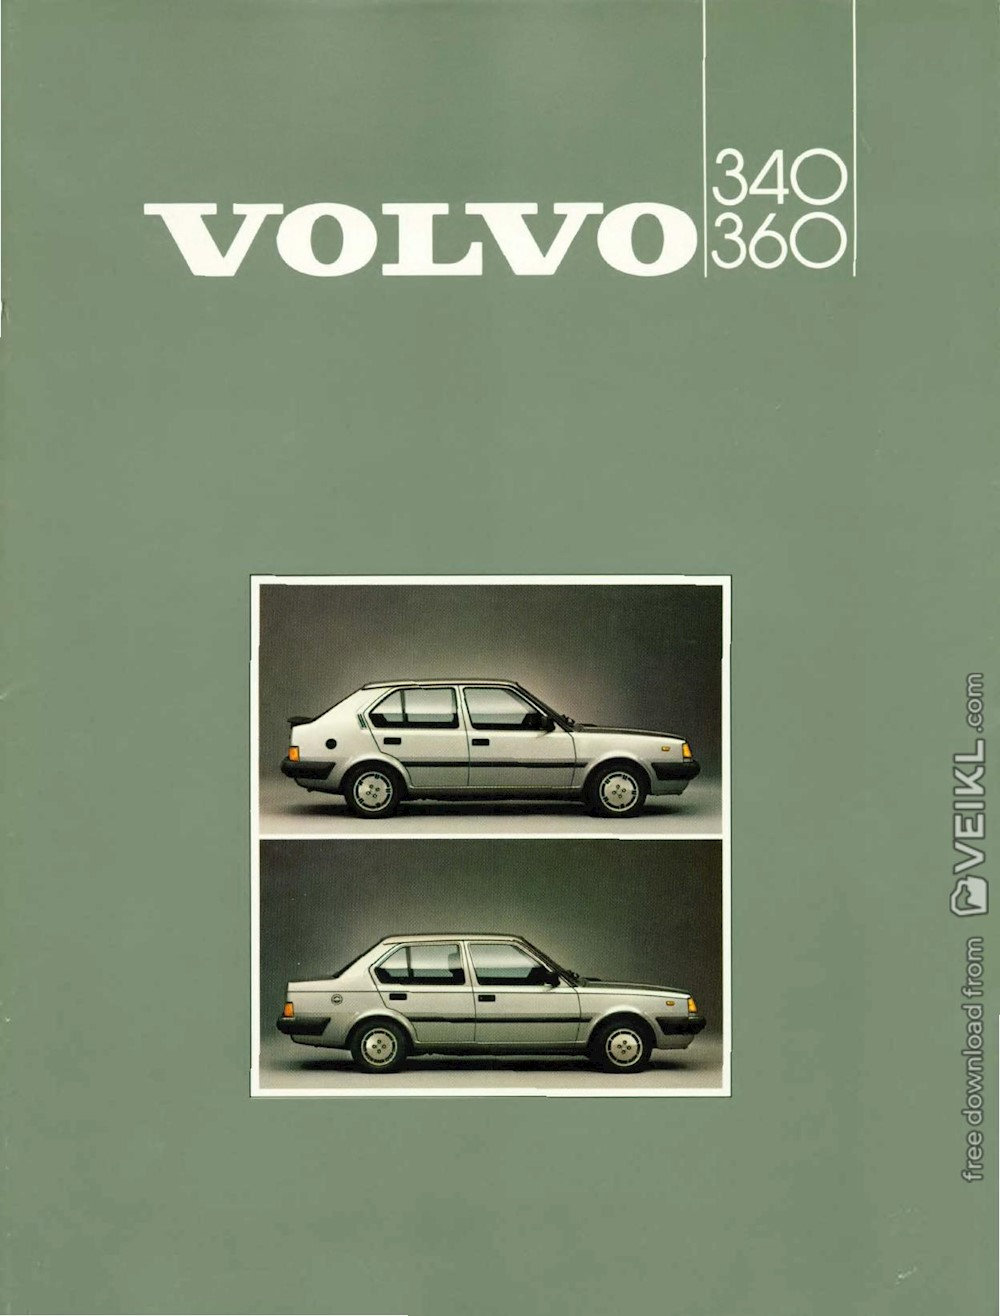 Volvo 340 and 360 Brochure 1985 NL